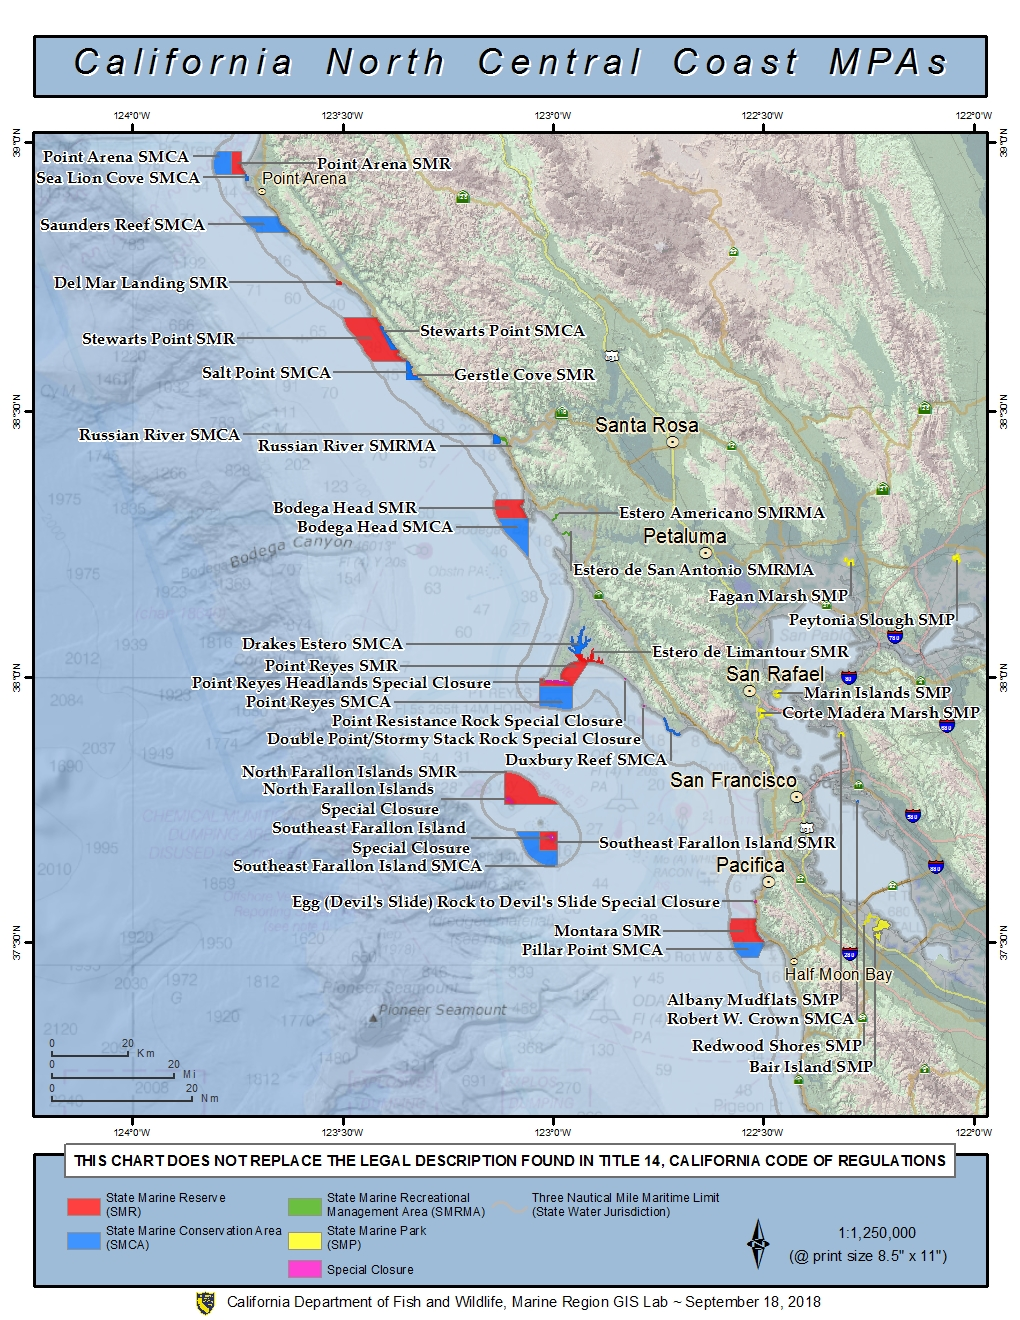 North Central California Marine Protected Areas